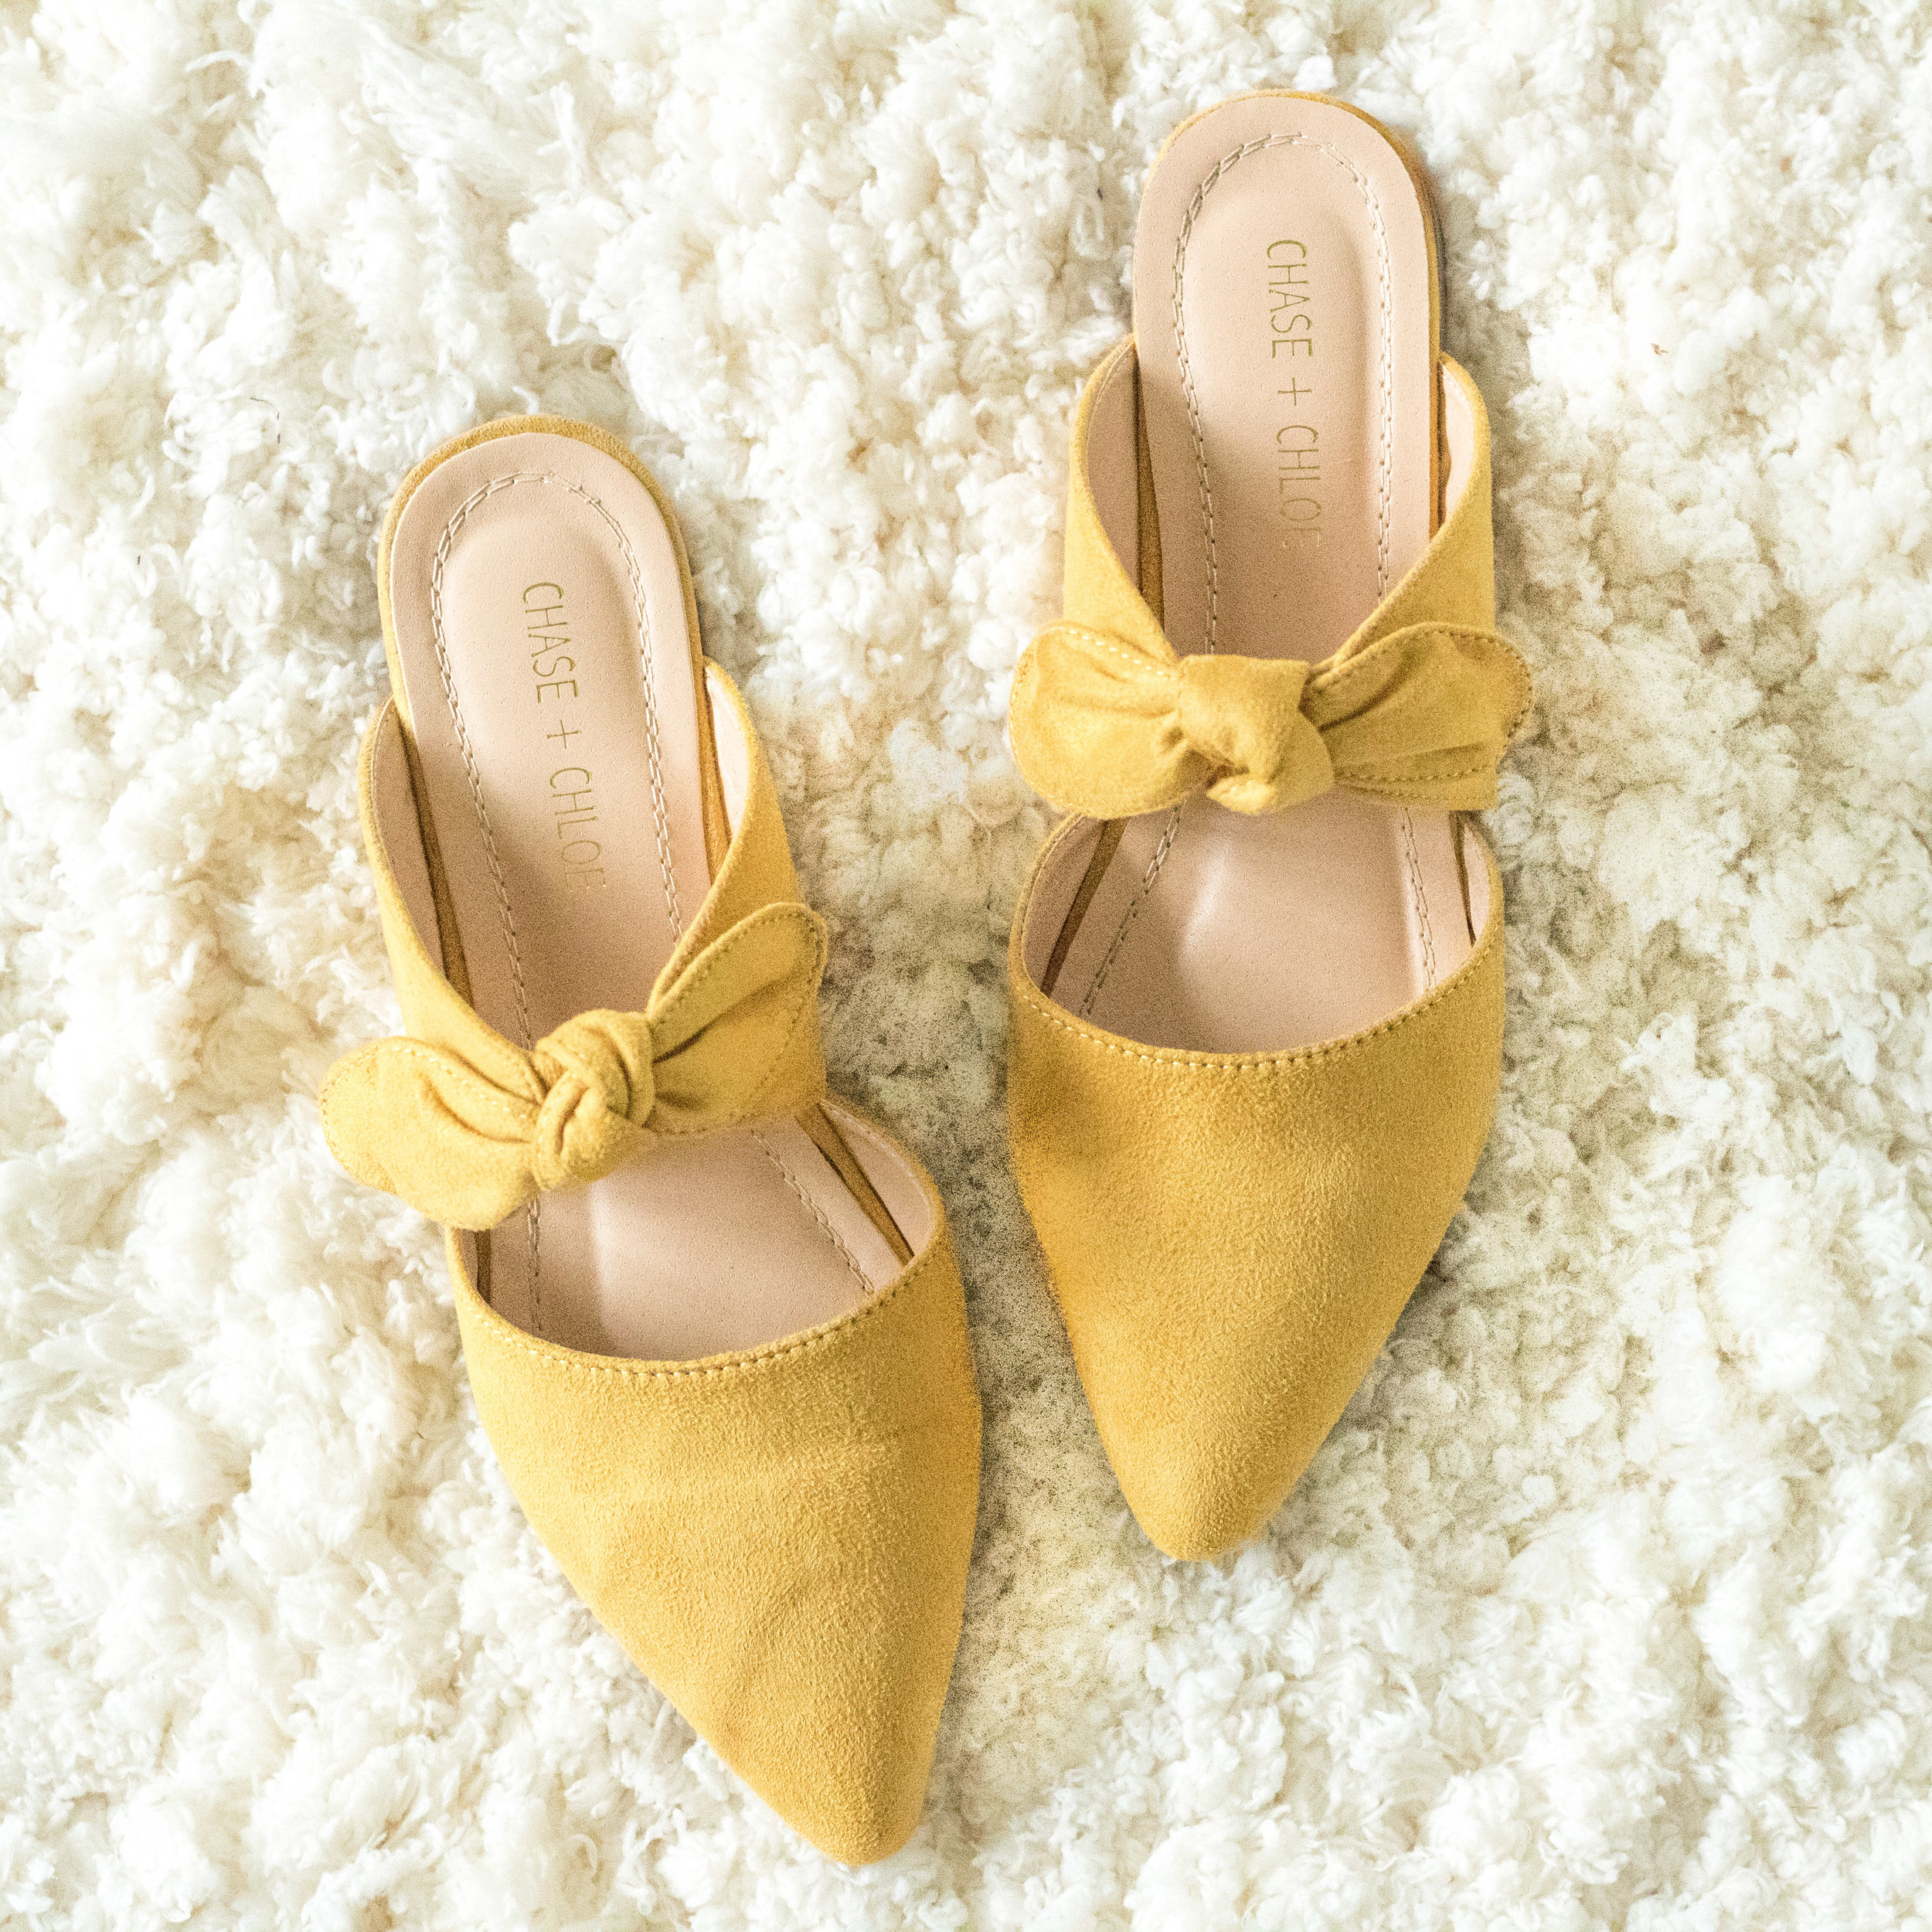 Yellow Bow Mules - I've gotten several pairs of shoes between the pink espadrilles above and these yellow bow mules, but I skipped ahead to reviewing these because I'm afraid they'll sell out! They are only $21 (and I have a 15% off coupon code for them: DEMURE15). So, they are just under $18, and are sold at one of my favorite online boutiques, Revie. They run a little small, so make sure you size up a half size! They are a soft suede material, the yellow is so fun, the leather isn't rigid, and the bow/pointy-toed combo is so perfect!! The soles are a little thin (I mean, they're only $18), but were still perfectly fine for all day wear. No break-in period. A wonderful purchase for the price!!! And a great way to support small business :)